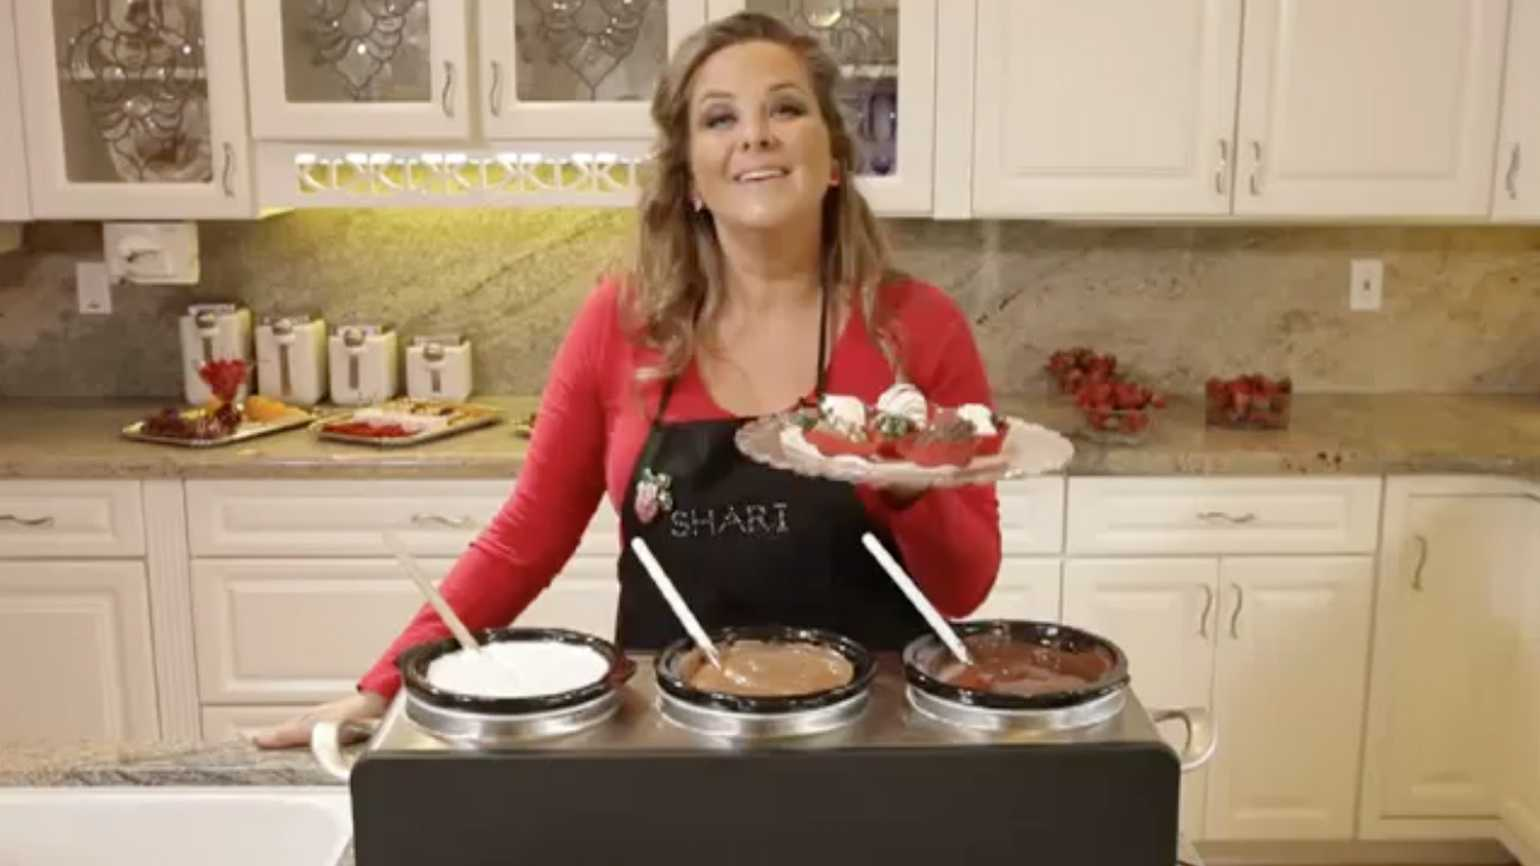 Shari demonstrates dipping techniques for your desserts.